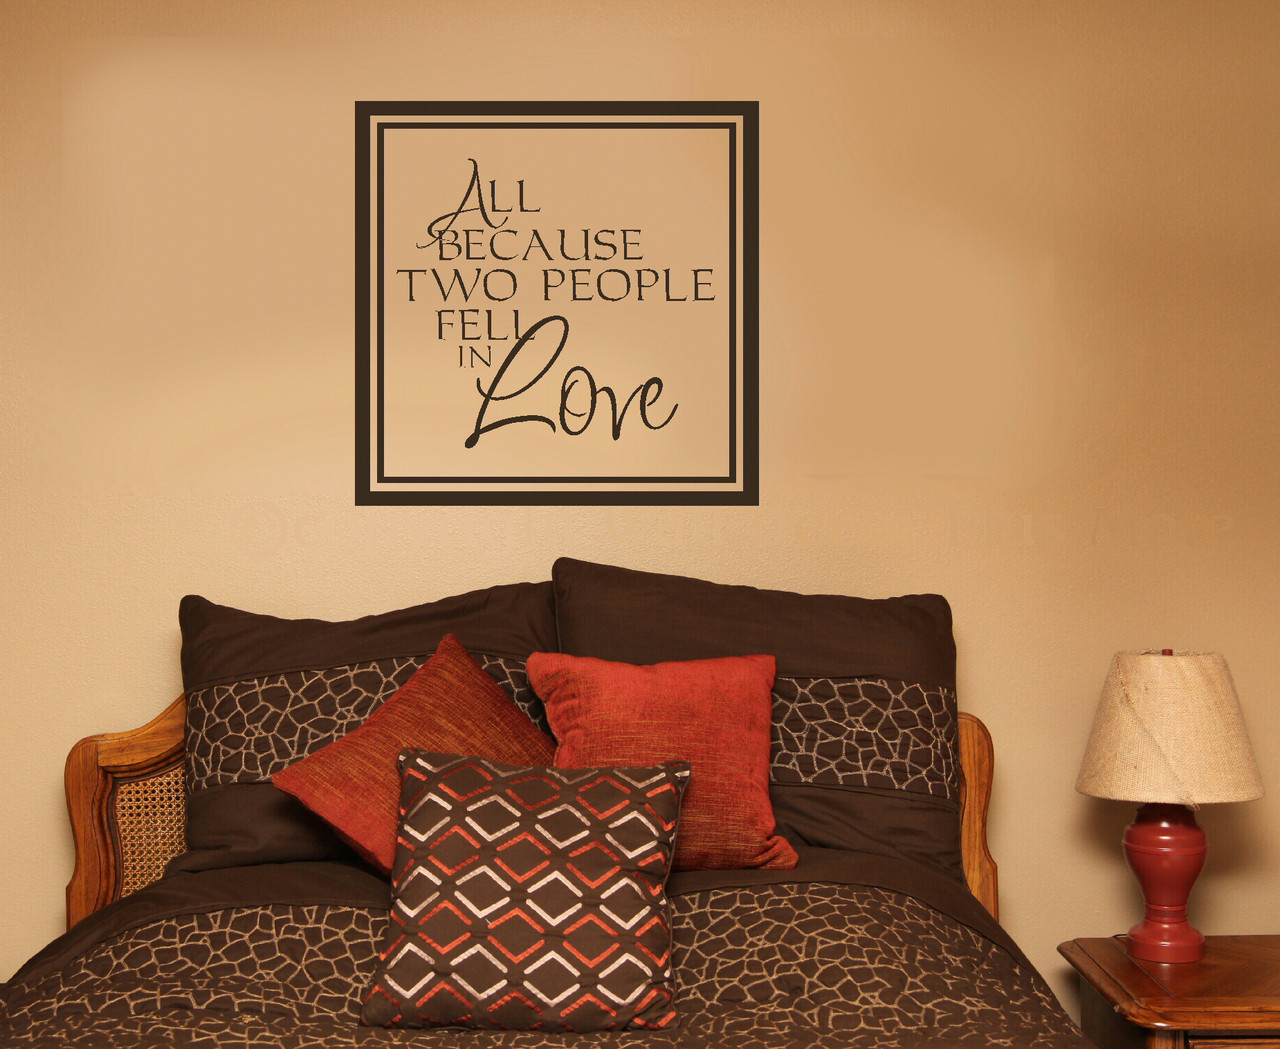 all because two people fell in love quotes wall sticker decals sayings all because two people fell in love quotes wall sticker decals sayings loading zoom